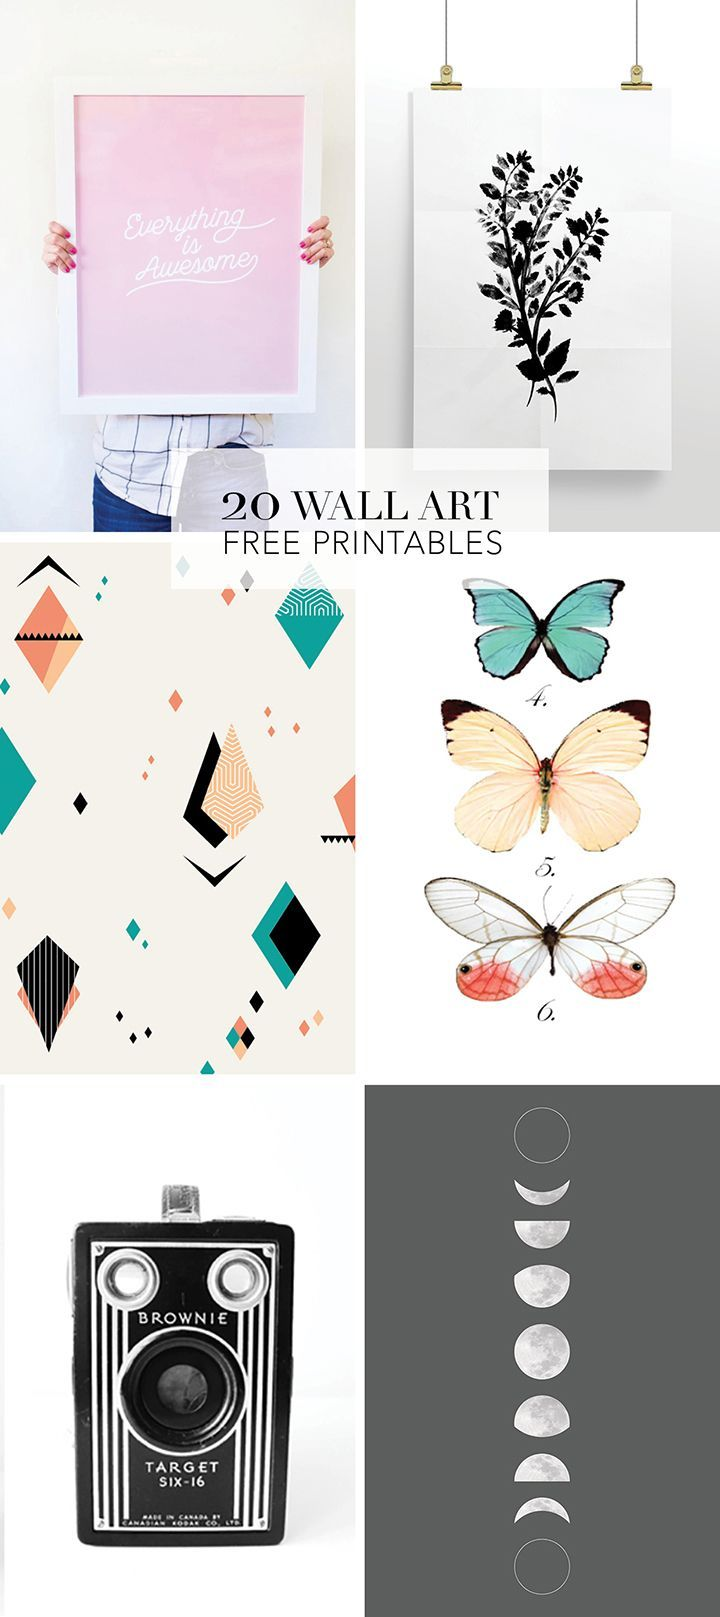 Decorate your walls without breaking the bank with these 20 Favorite Wall Art Printables